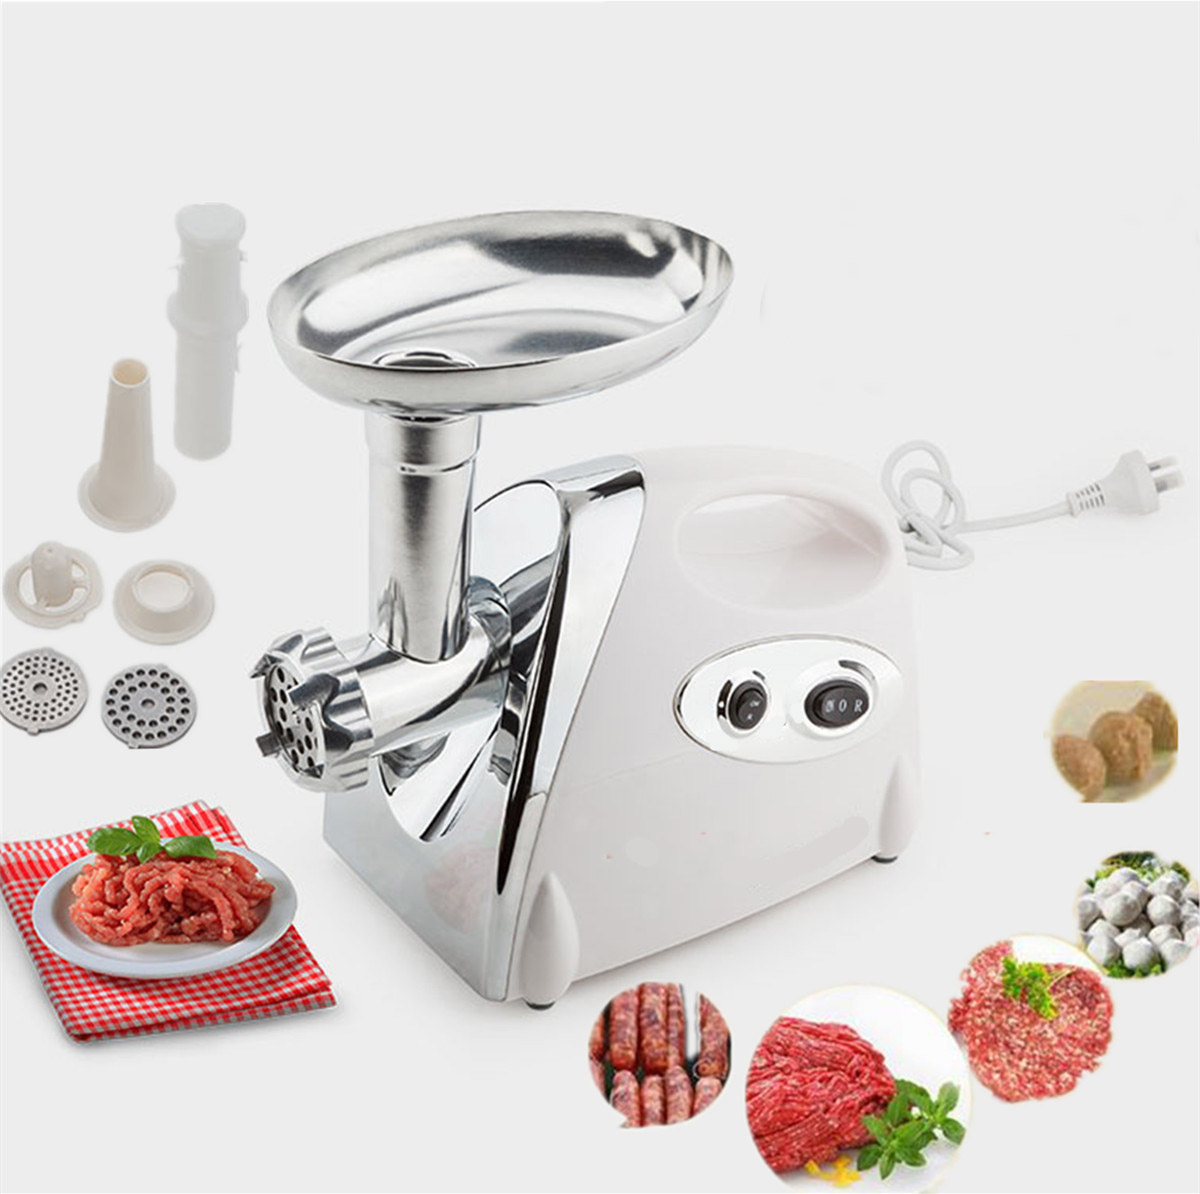 Zimtown Kitchen Meat Grinder, Stainless Steel Cutting Blade Electric Meat Mincer with